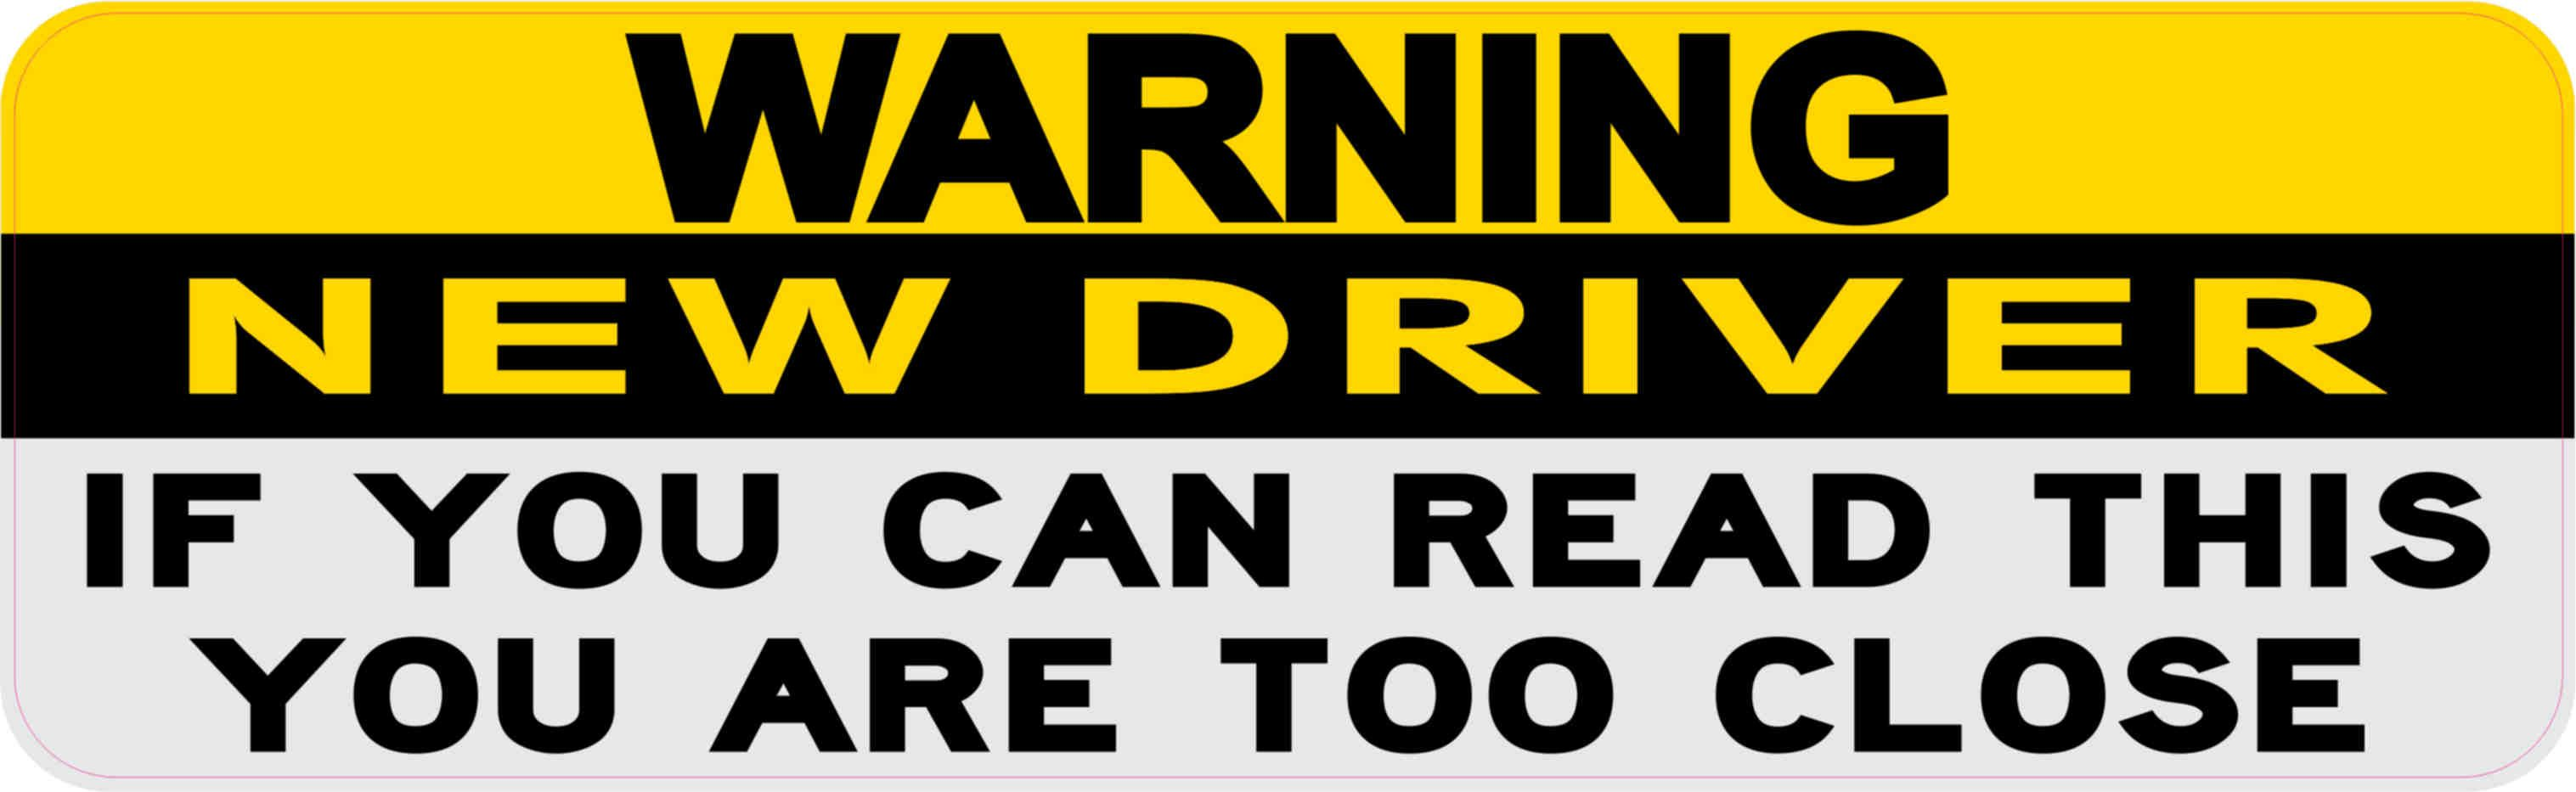 10in X 3in If You Can Read You Are Too Close Warning New Driver Sticker New Drivers Vinyl Signs Bumper Magnets [ 933 x 3033 Pixel ]